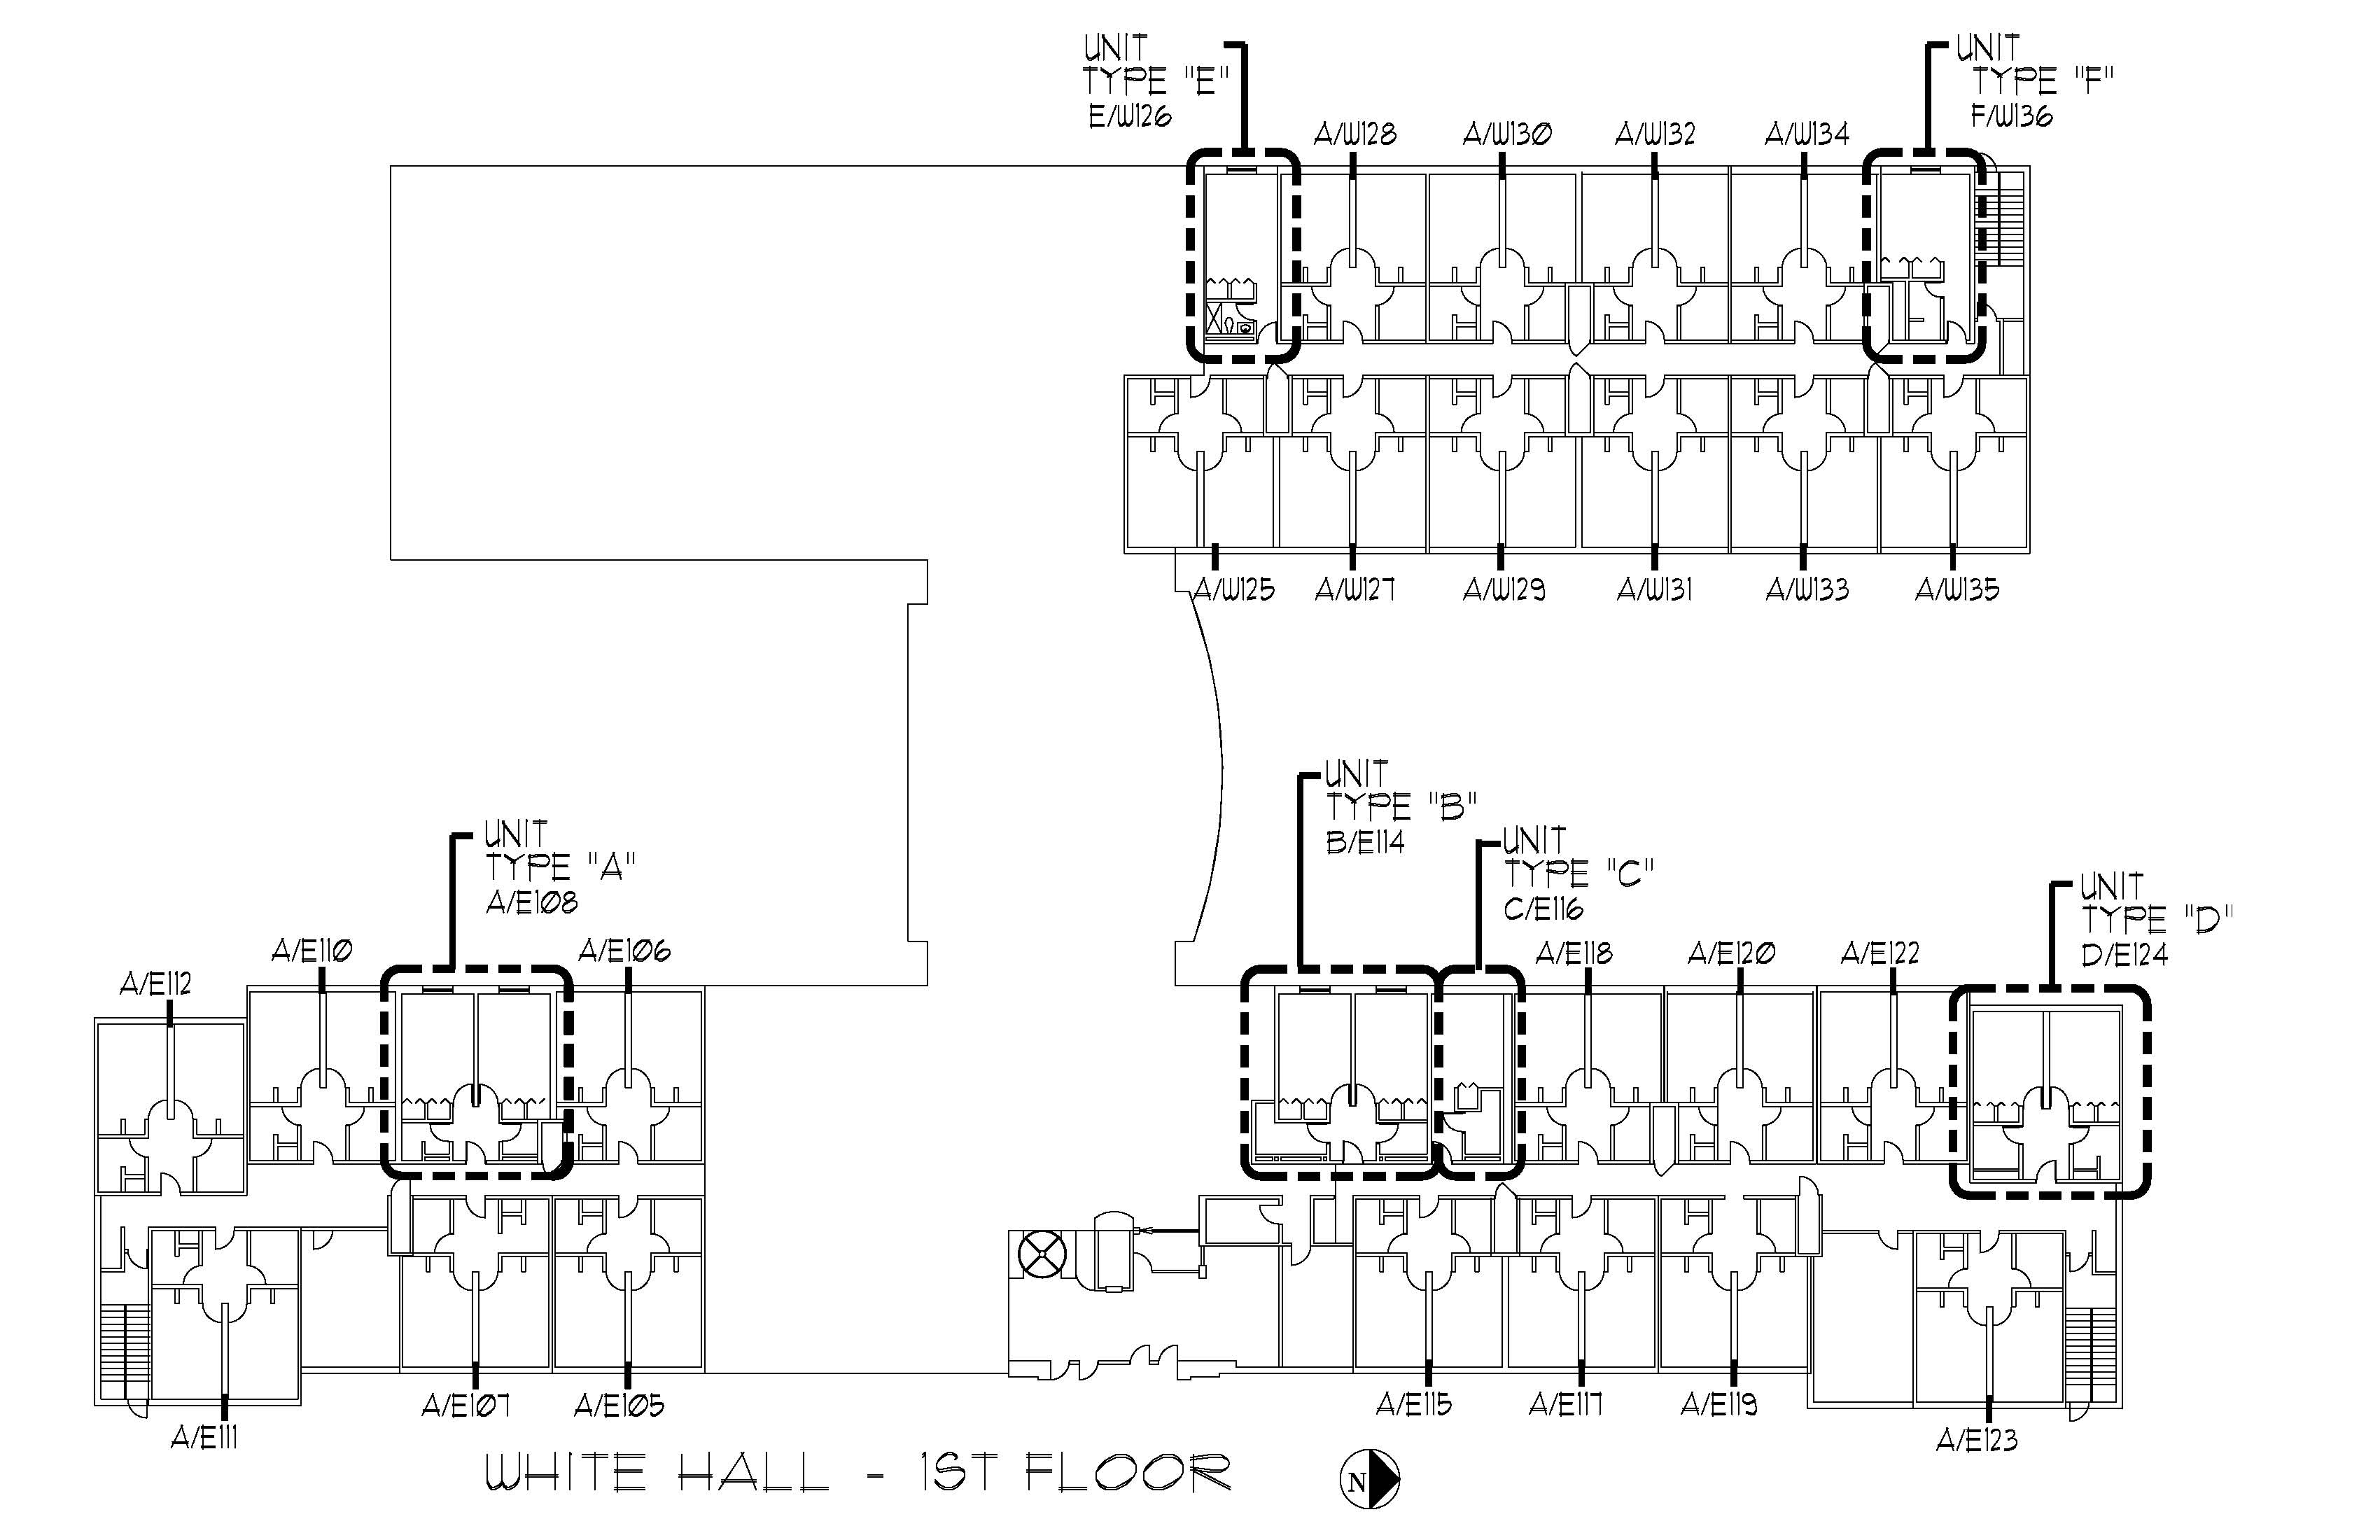 Northeastern university housing floor plansuniversity home plans